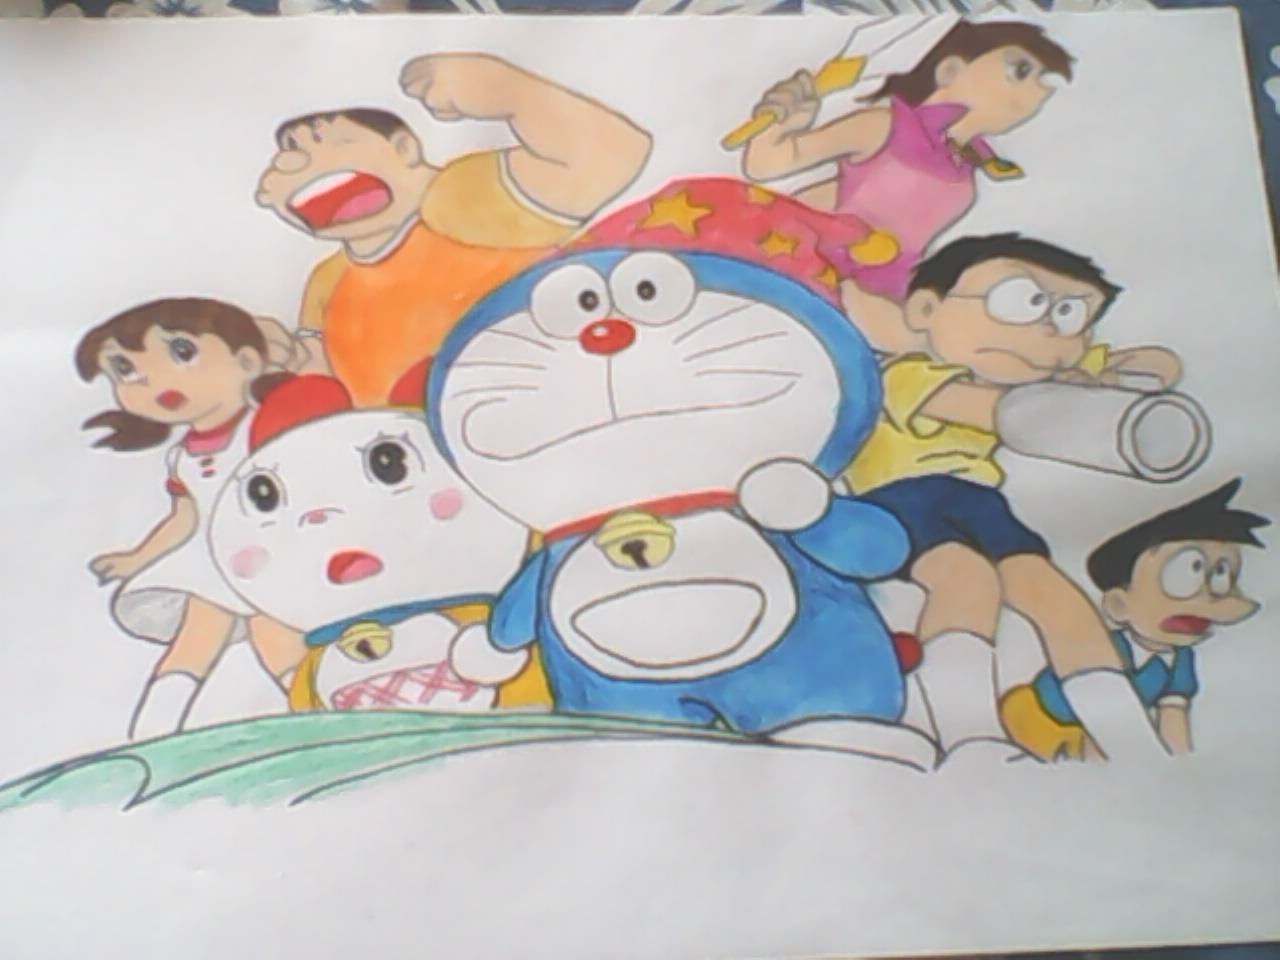 Doraemon-O Gato do Futuro drawing